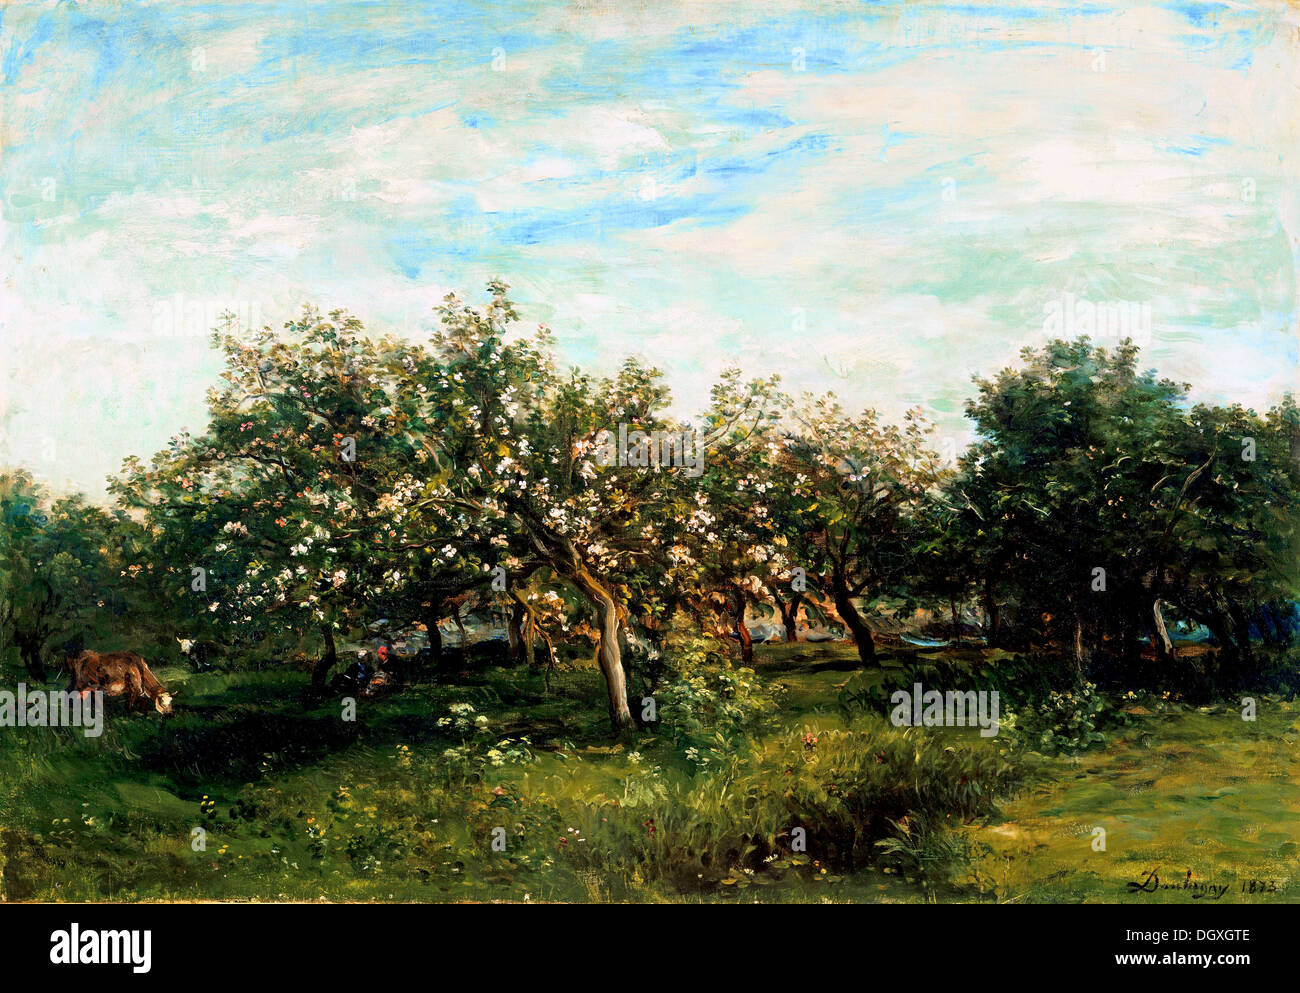 Apple Blossoms - by Charles-François Daubigny, 1873 - Stock Image